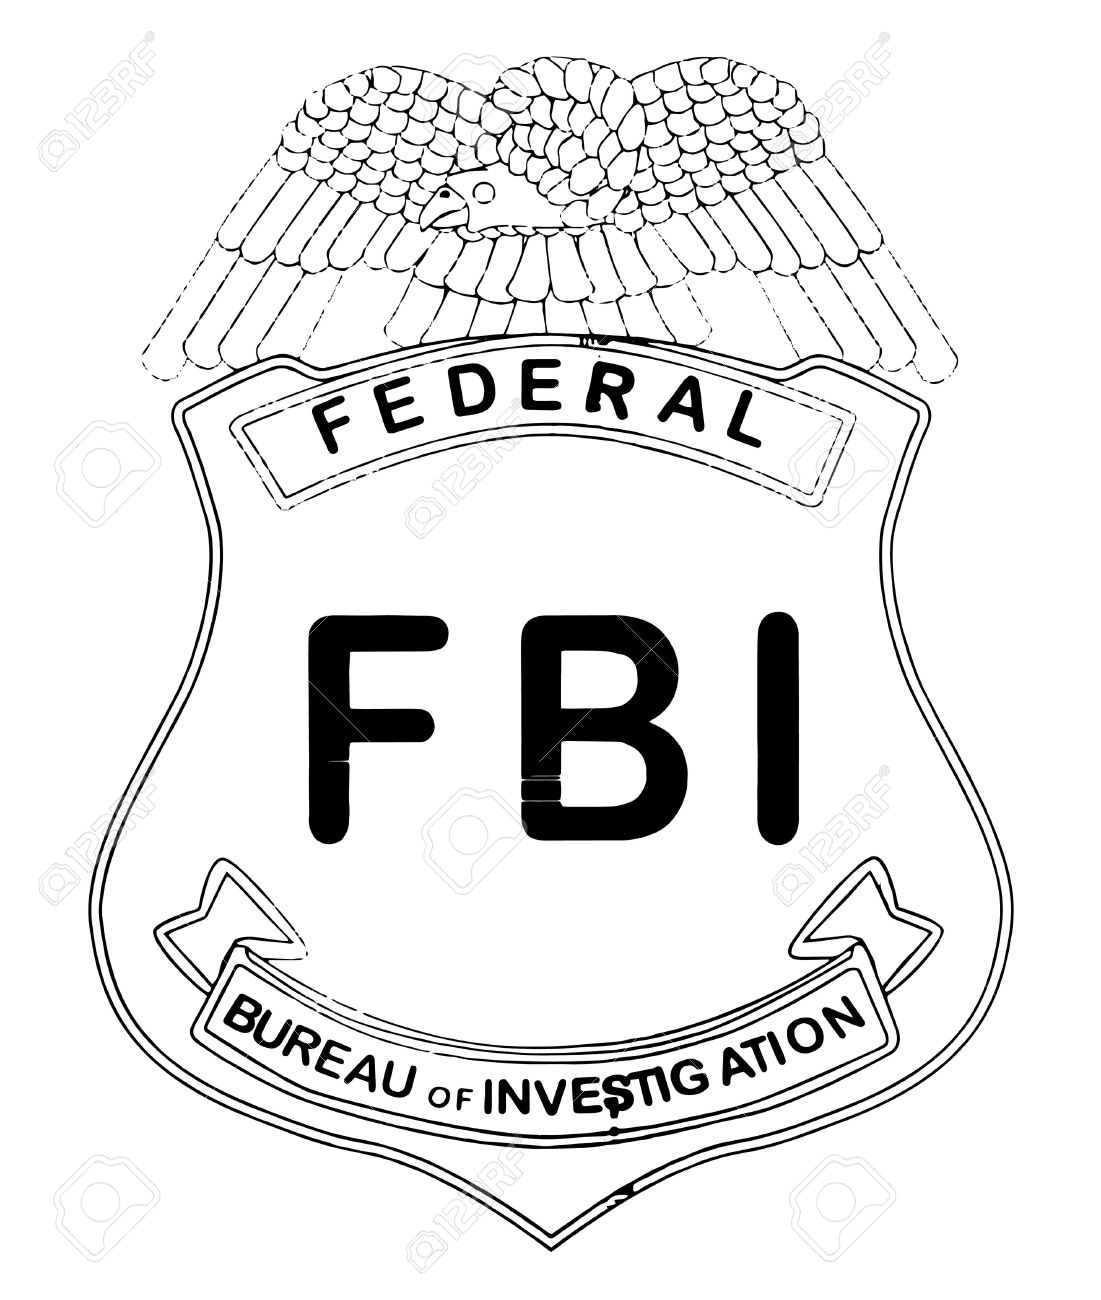 Fbi badge clipart.